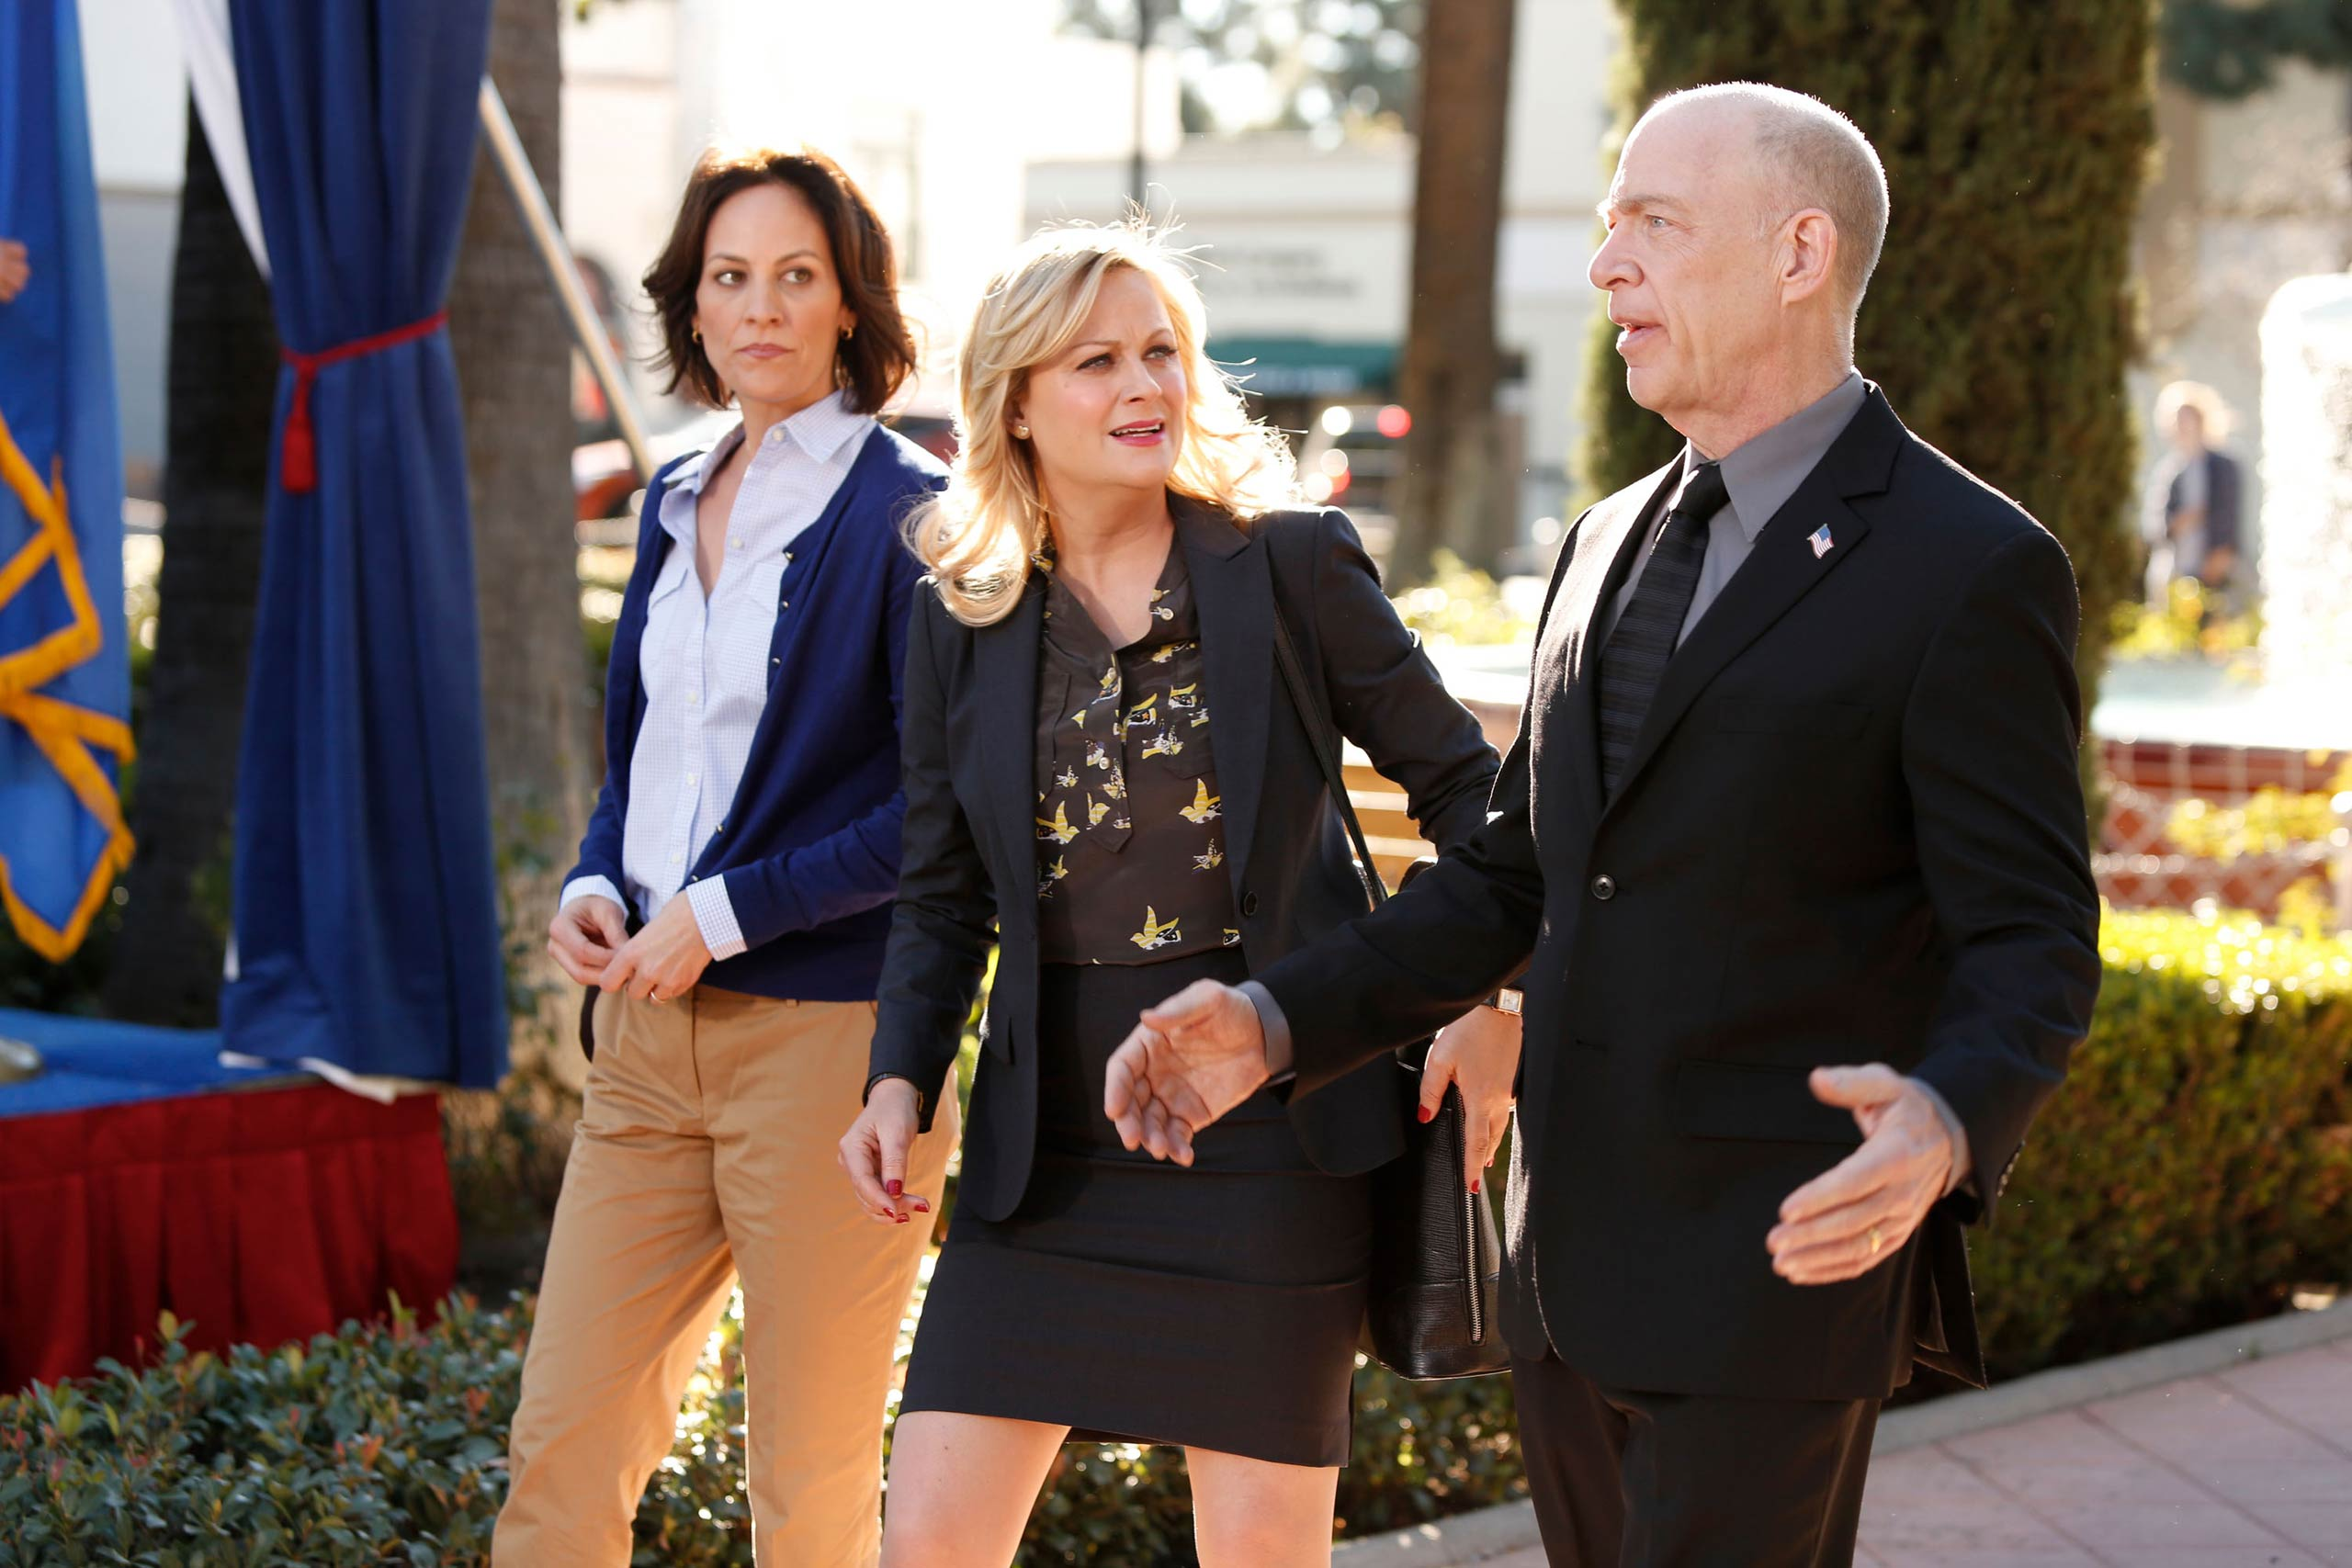 <strong>J.K. Simmons, right, as Mayor Stice</strong>